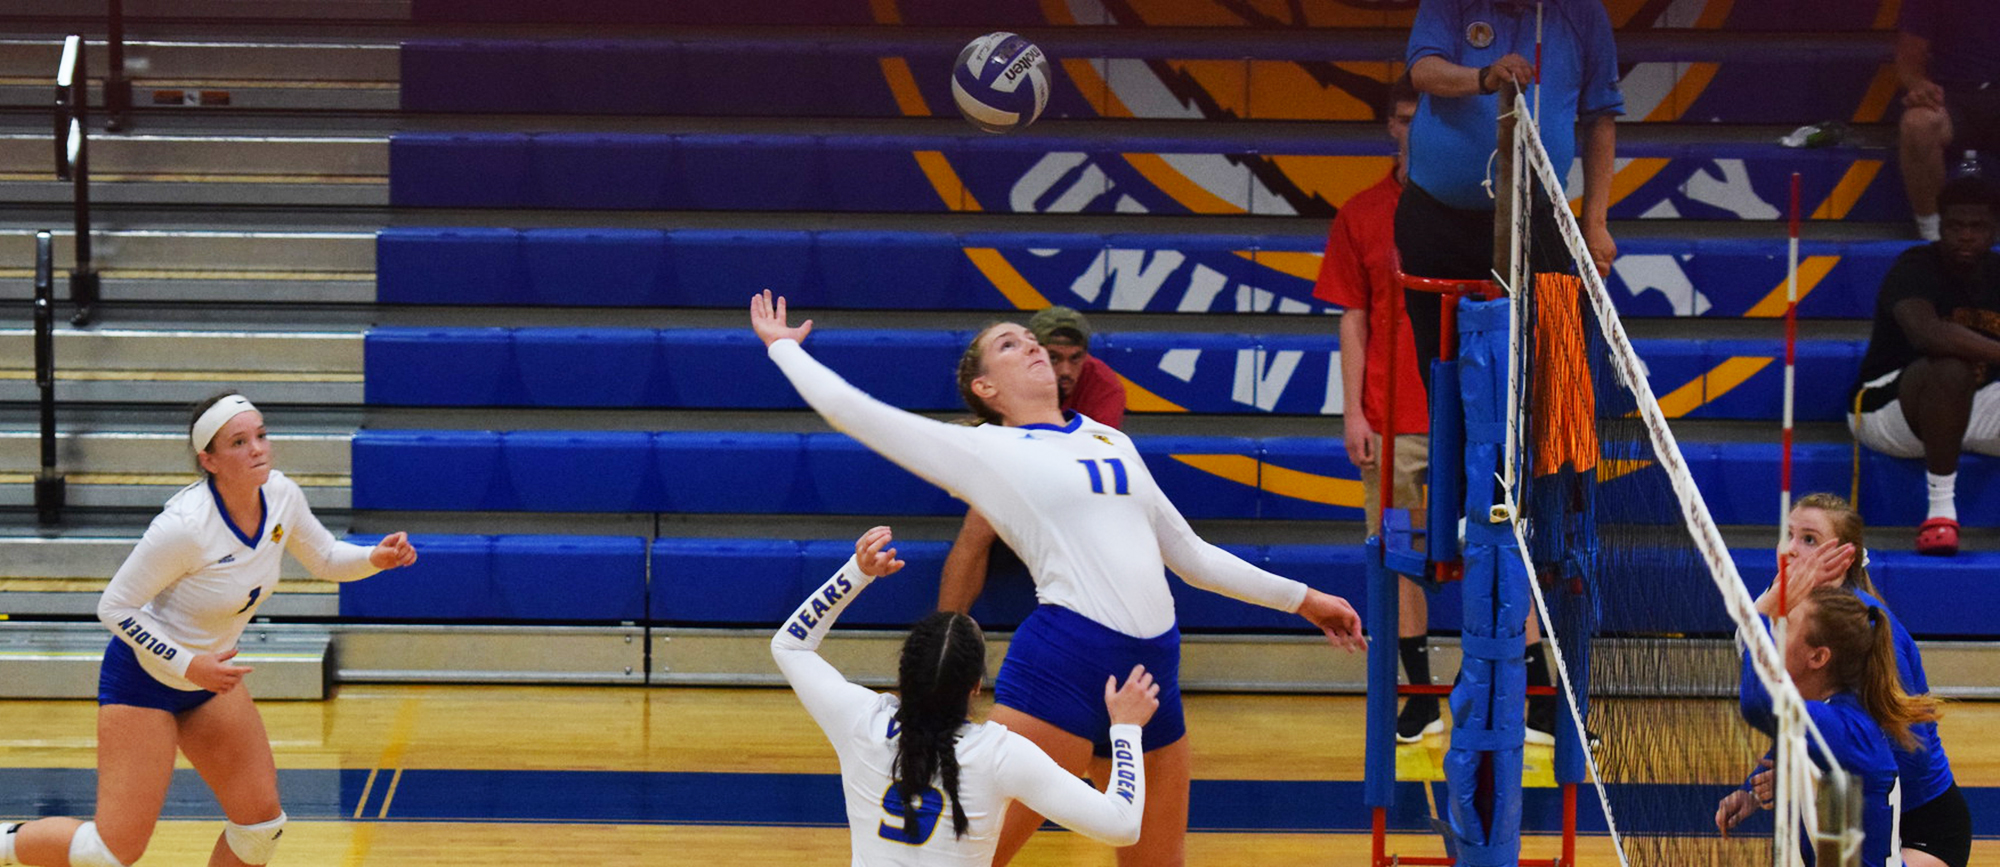 Cassie Holmes hit .333 with 14 kills and 7 blocks (4 solo) on Friday night in Western New England's 3-2 win over Mount Holyoke. (Photo by Rachael Margossian)